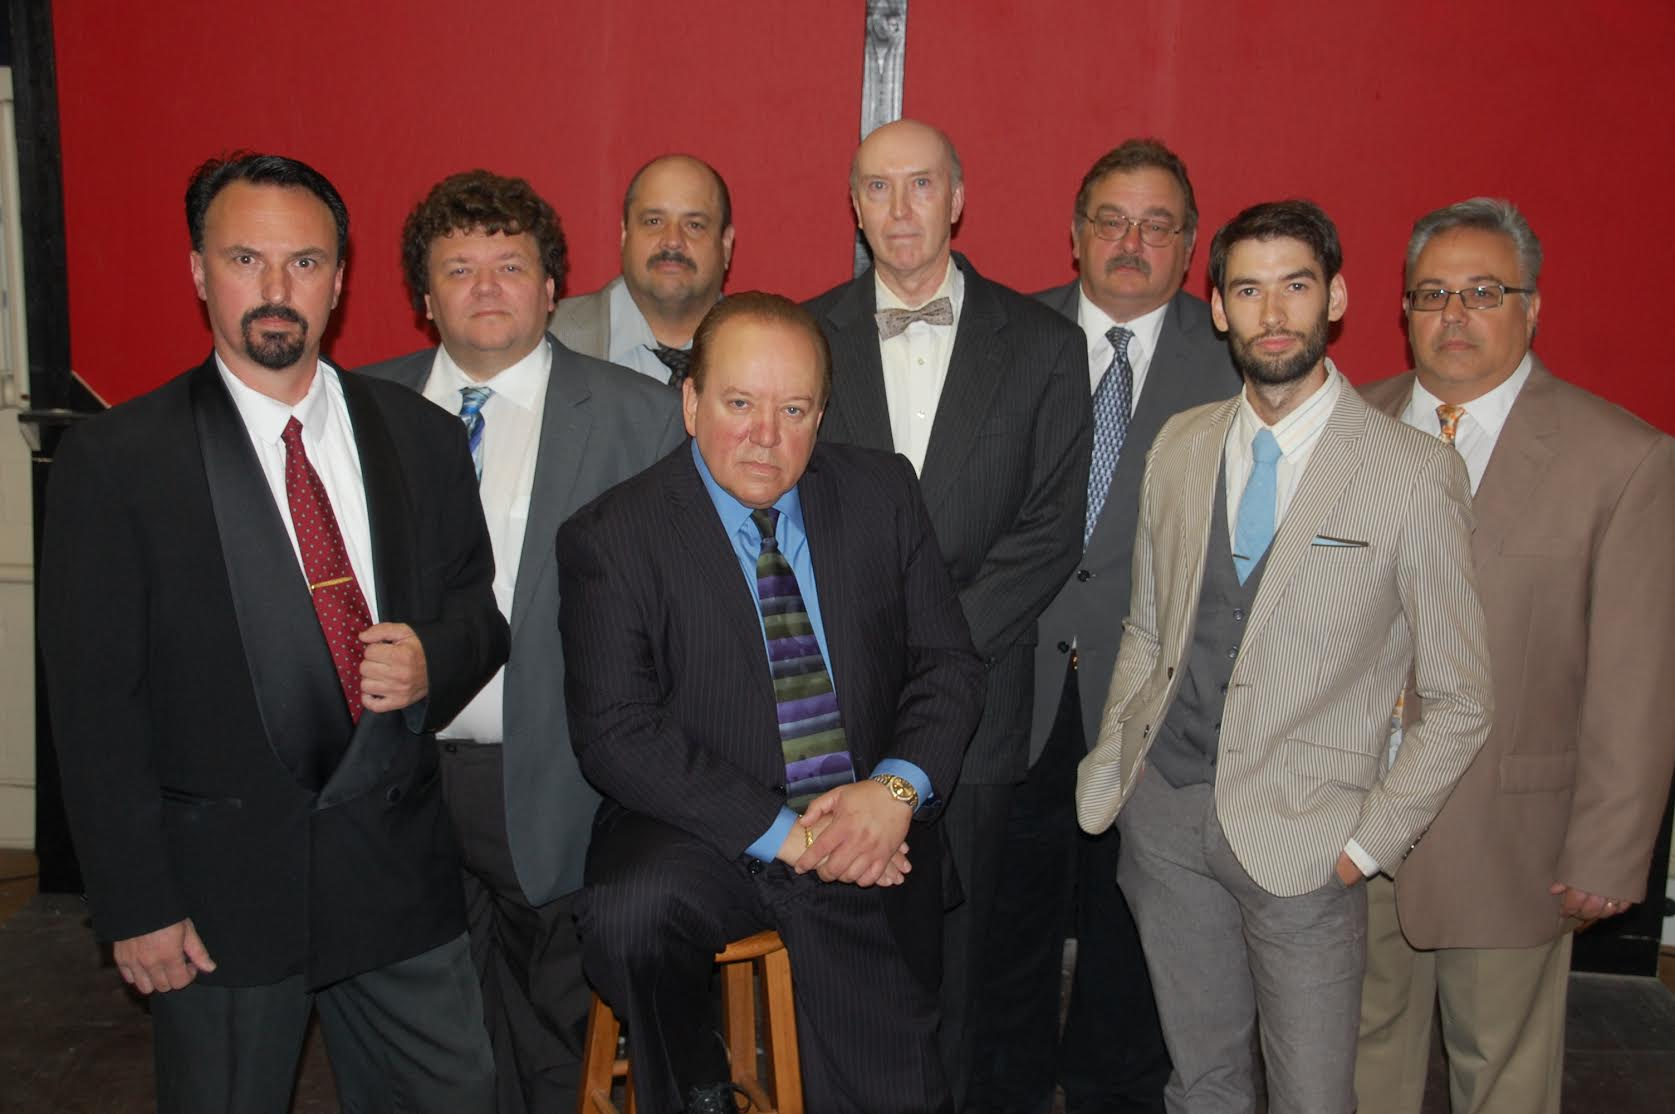 <div class='slider_caption'>		 <h1>The cast of Glengarry Glen Ross 2015</h1> 			<a class='slider-readmore' href='http://attleborocommunitytheatre.com/?page_id=73'>Read More</a>